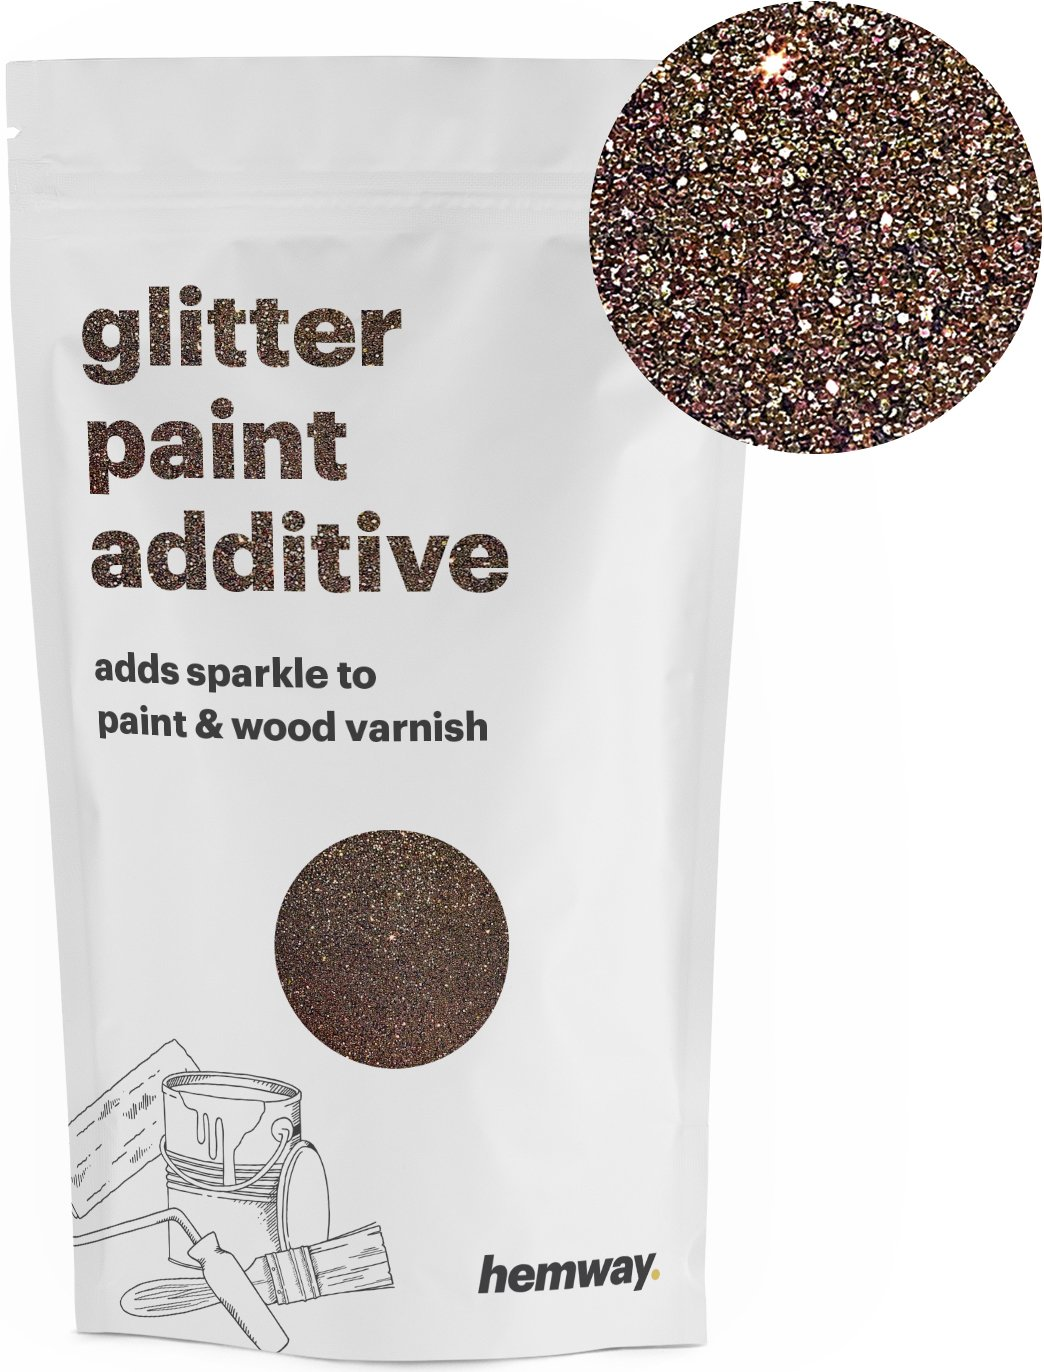 Hemway (Bronze) Glitter Paint Additive Crystals 100g/3.5oz for Acrylic Latex Emulsion Paint - Interior Exterior Wall, Ceiling, Wood, Varnish, Dead flat, Matte, Gloss, Satin, Silk